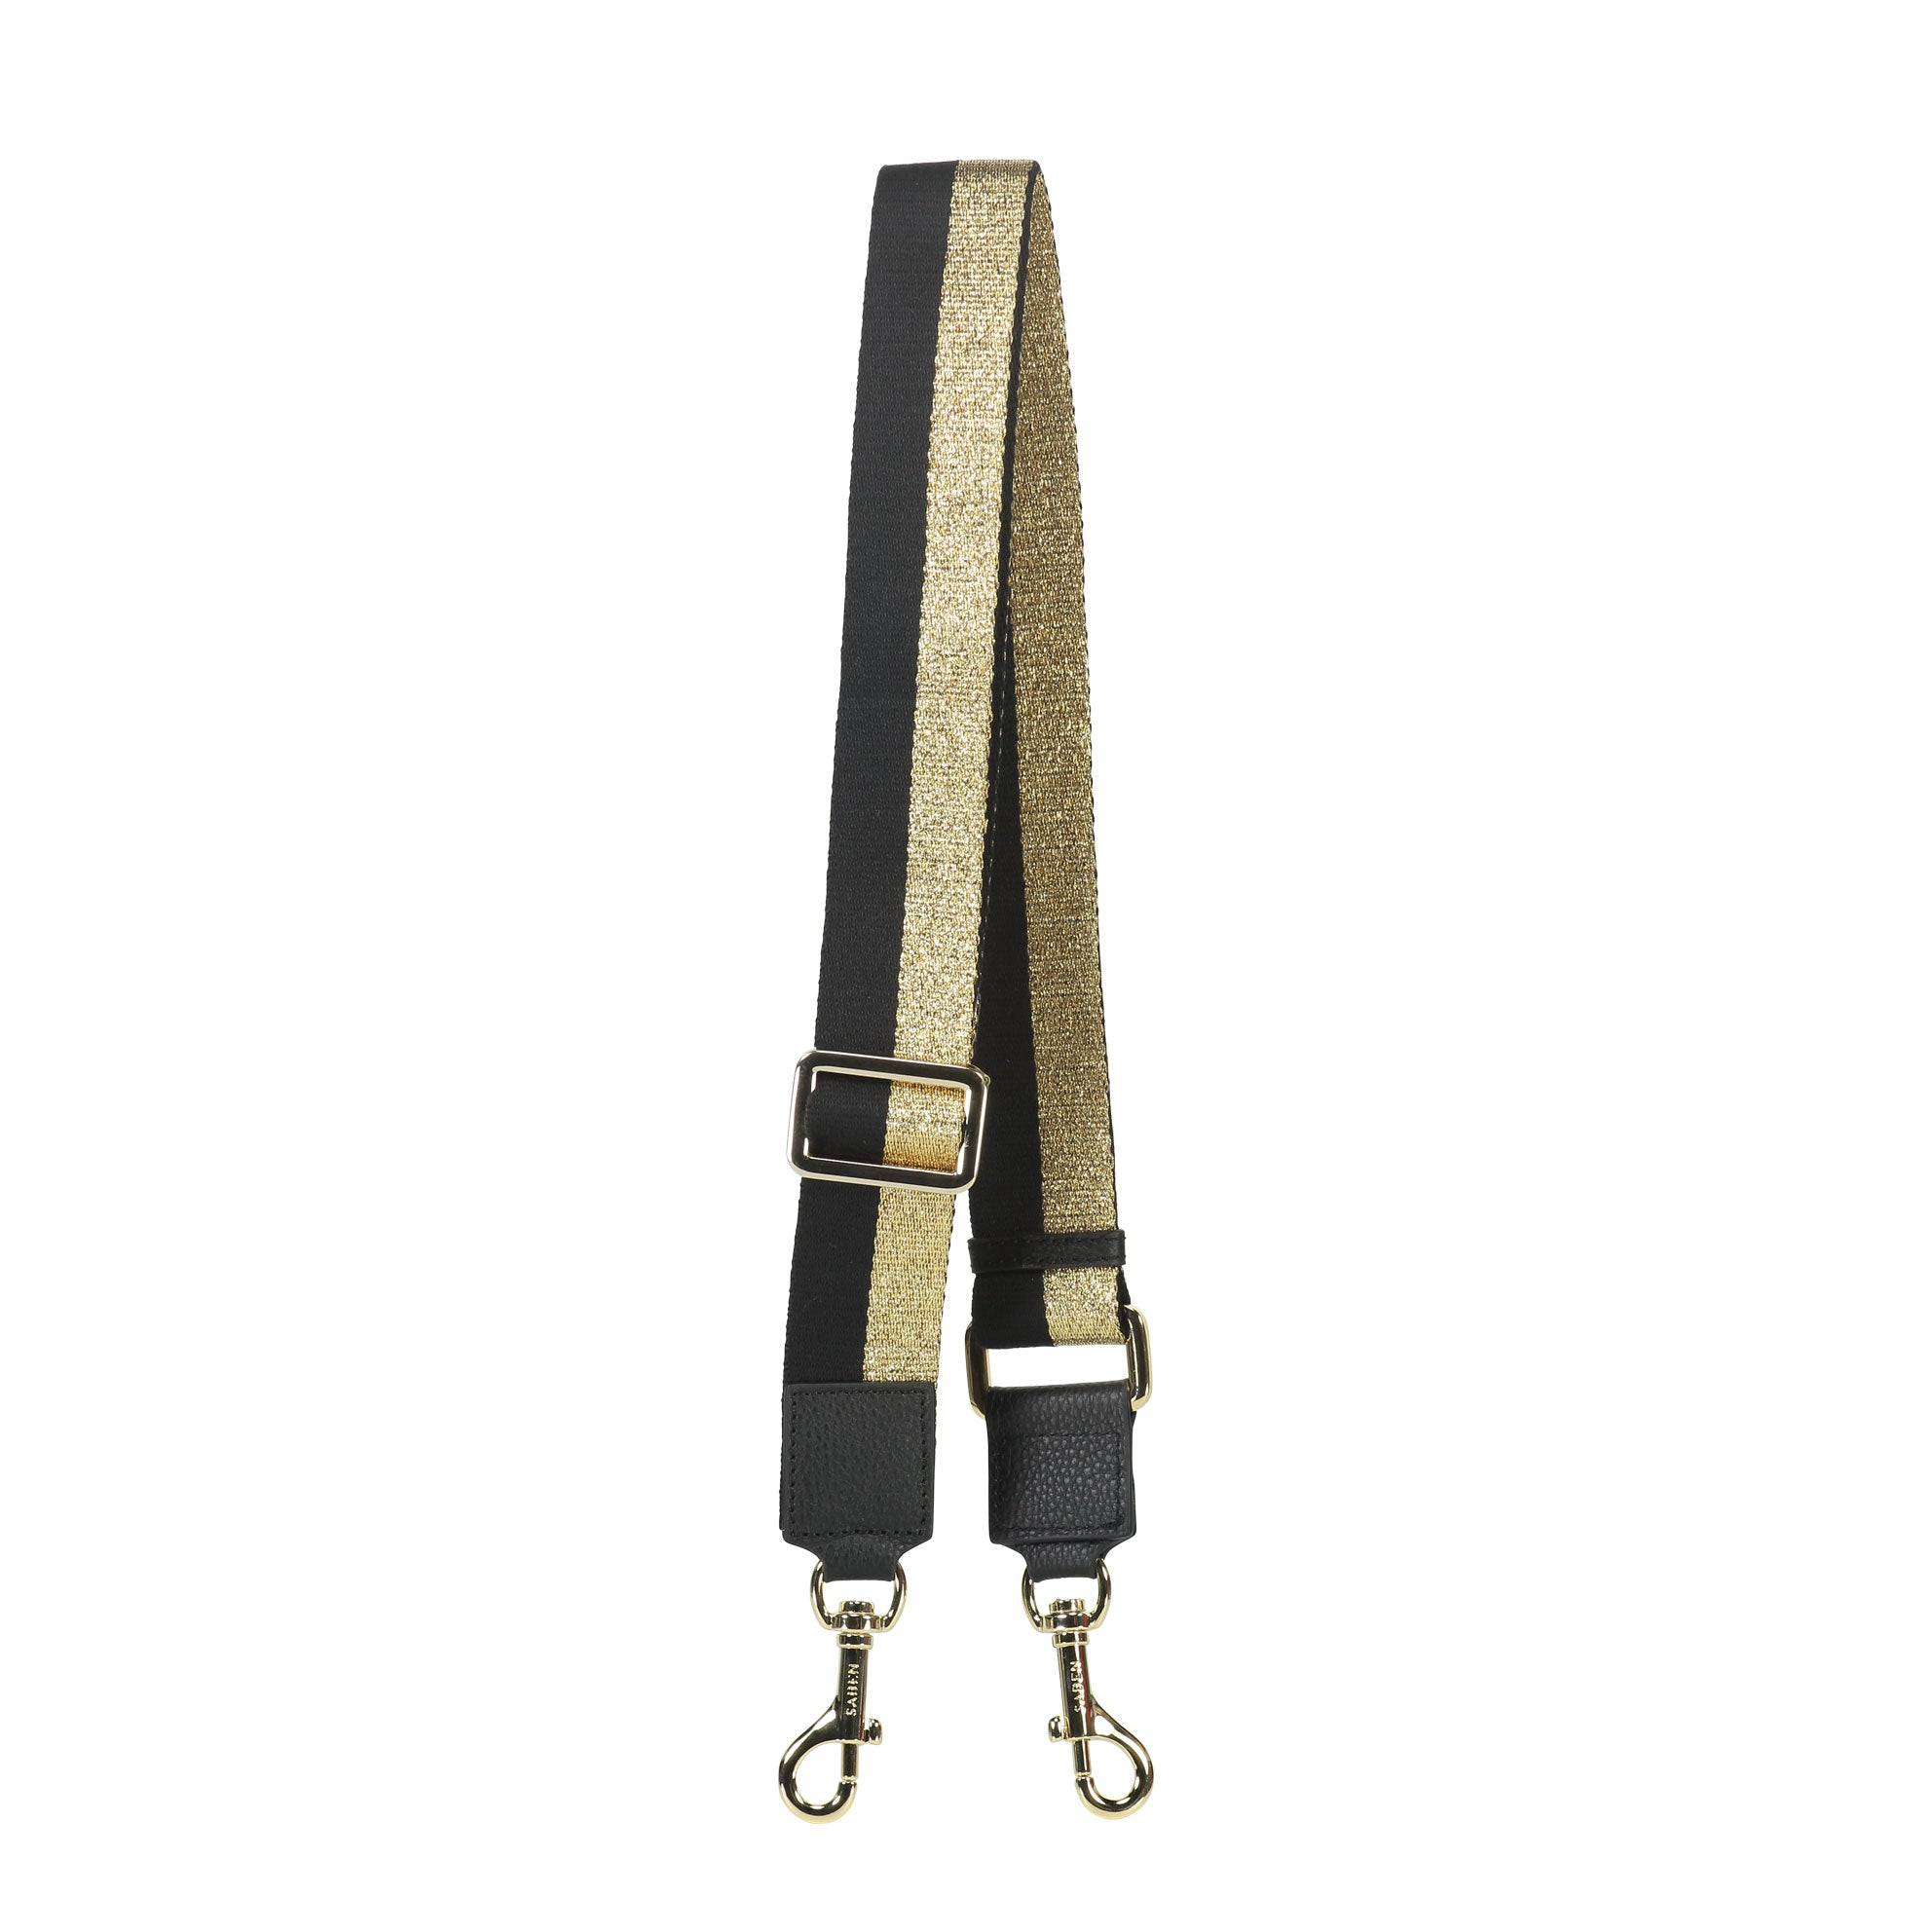 saben handbag feature strap made out of cotton and designed in New Zealand